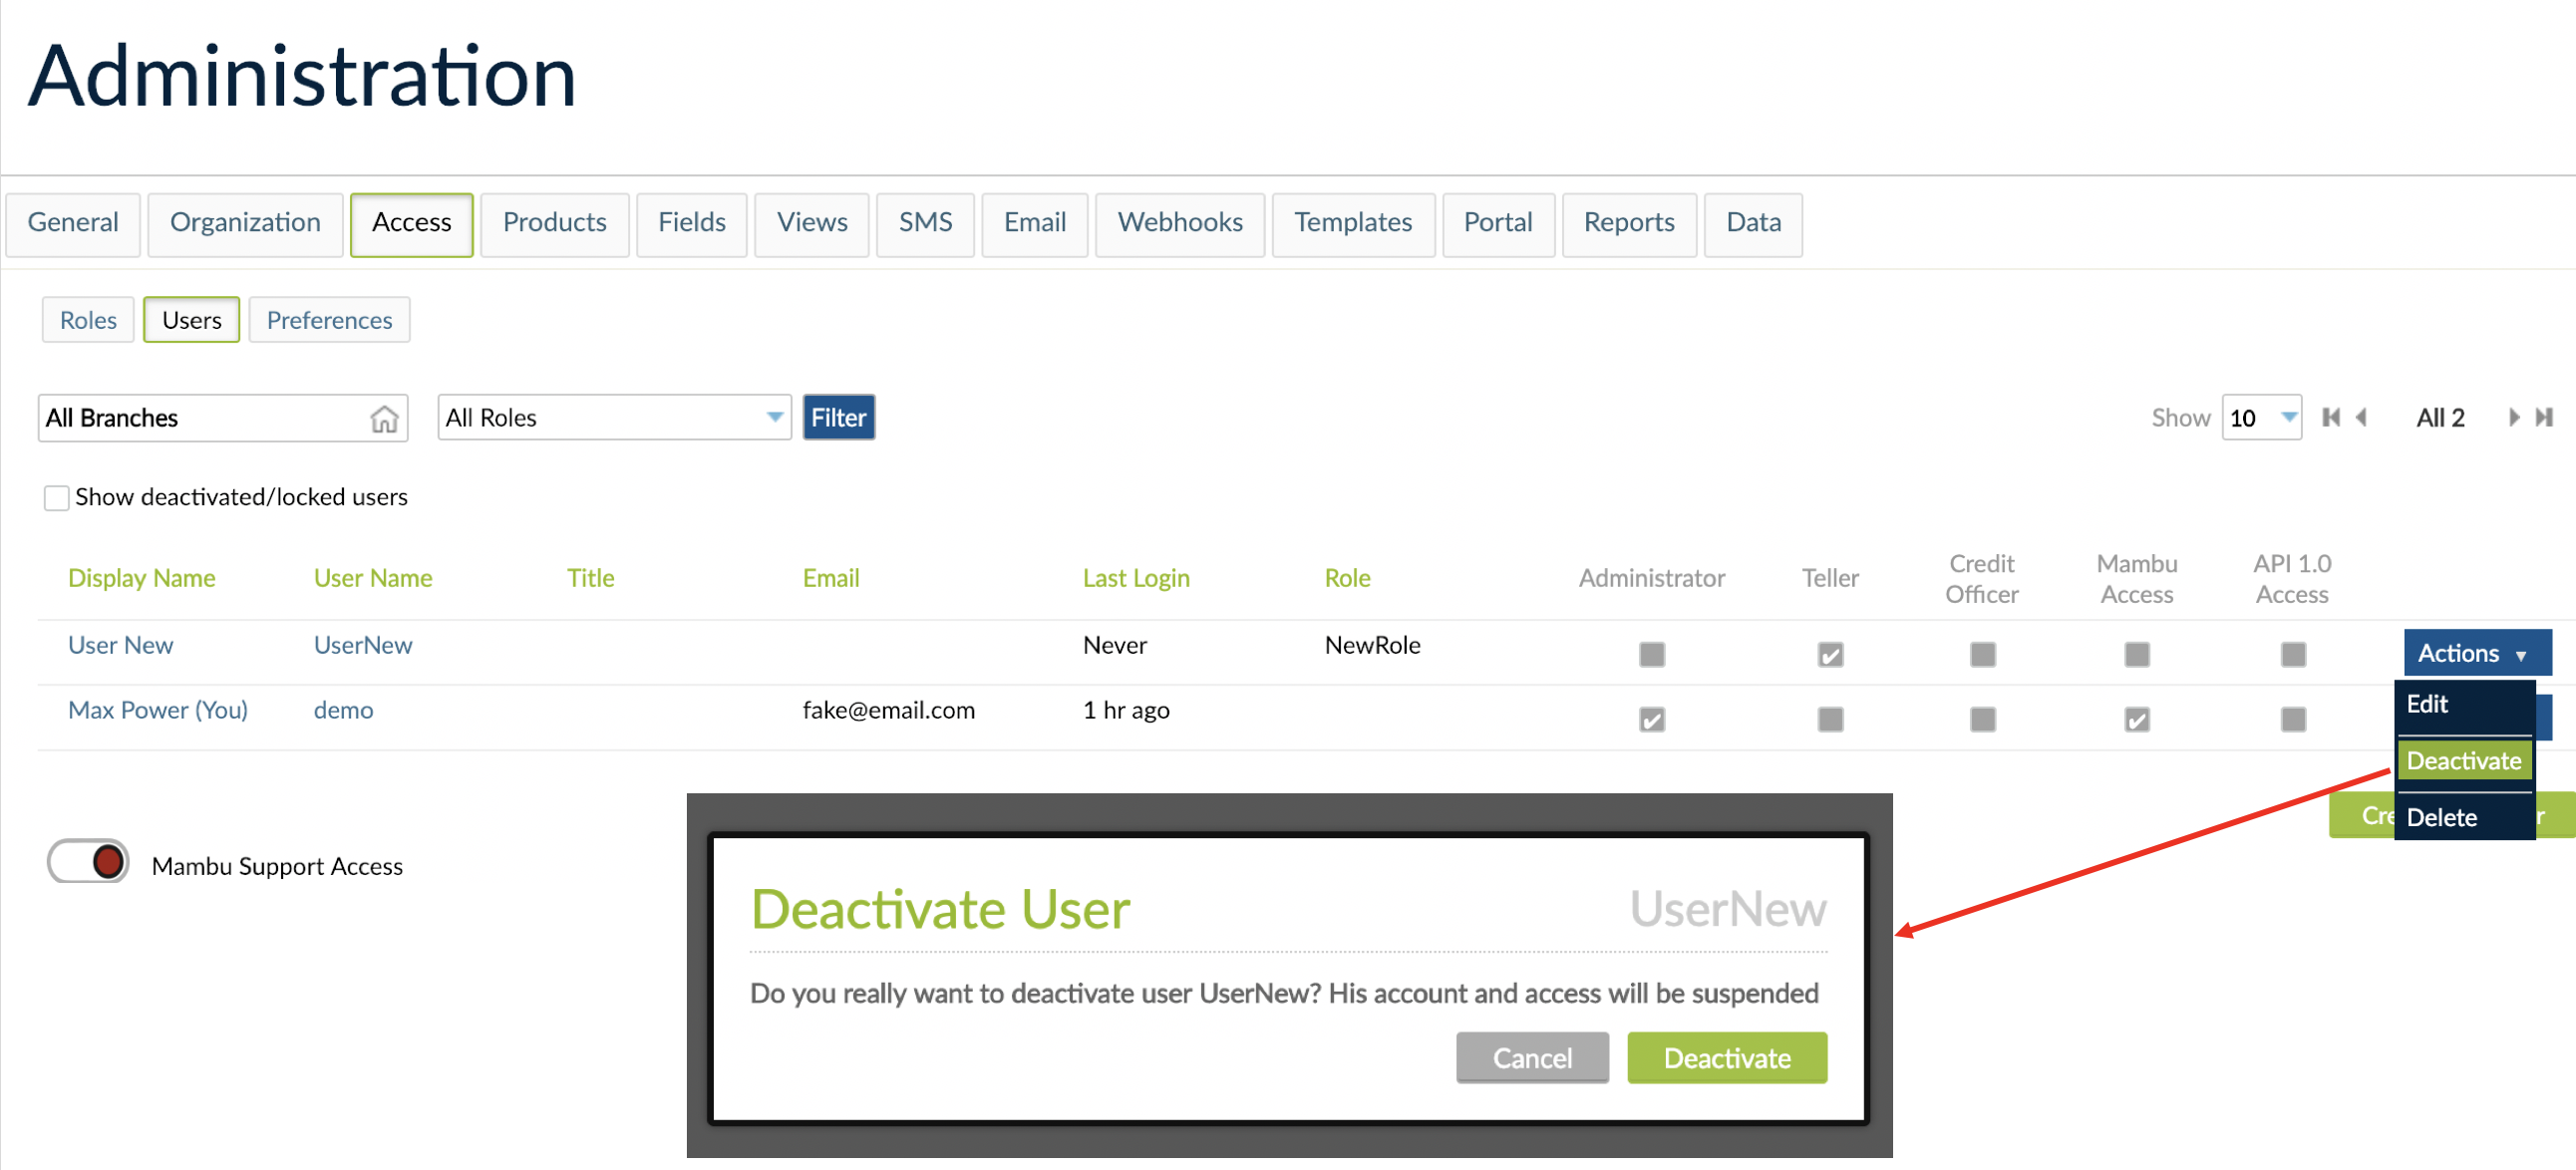 User deactivation and the related pop-ul that is displayed